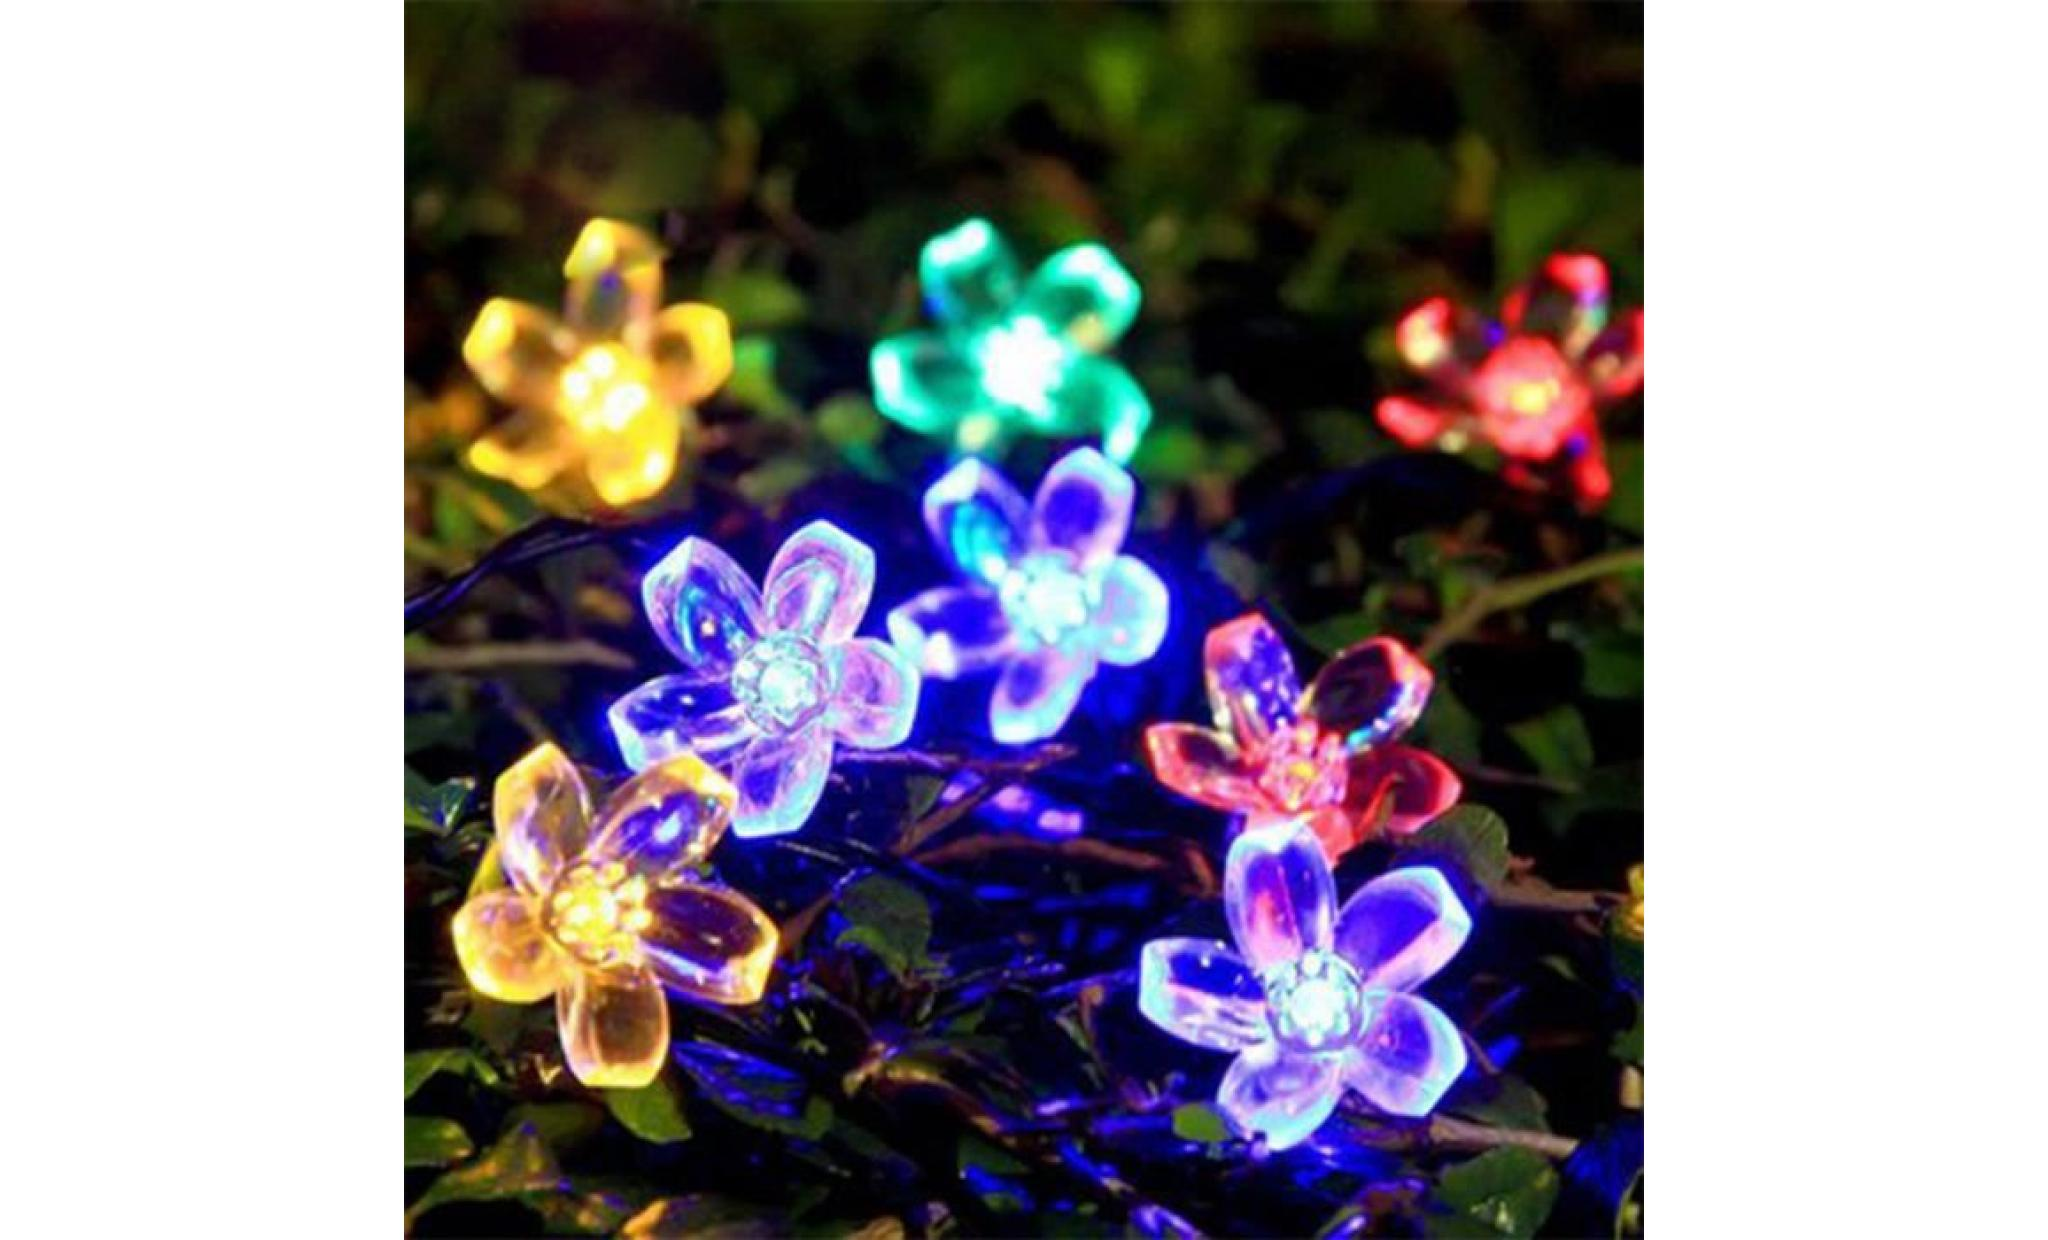 5m 50led peach flower lampes d'éclairage à énergie solaire outdoor garden party decor@pansy469